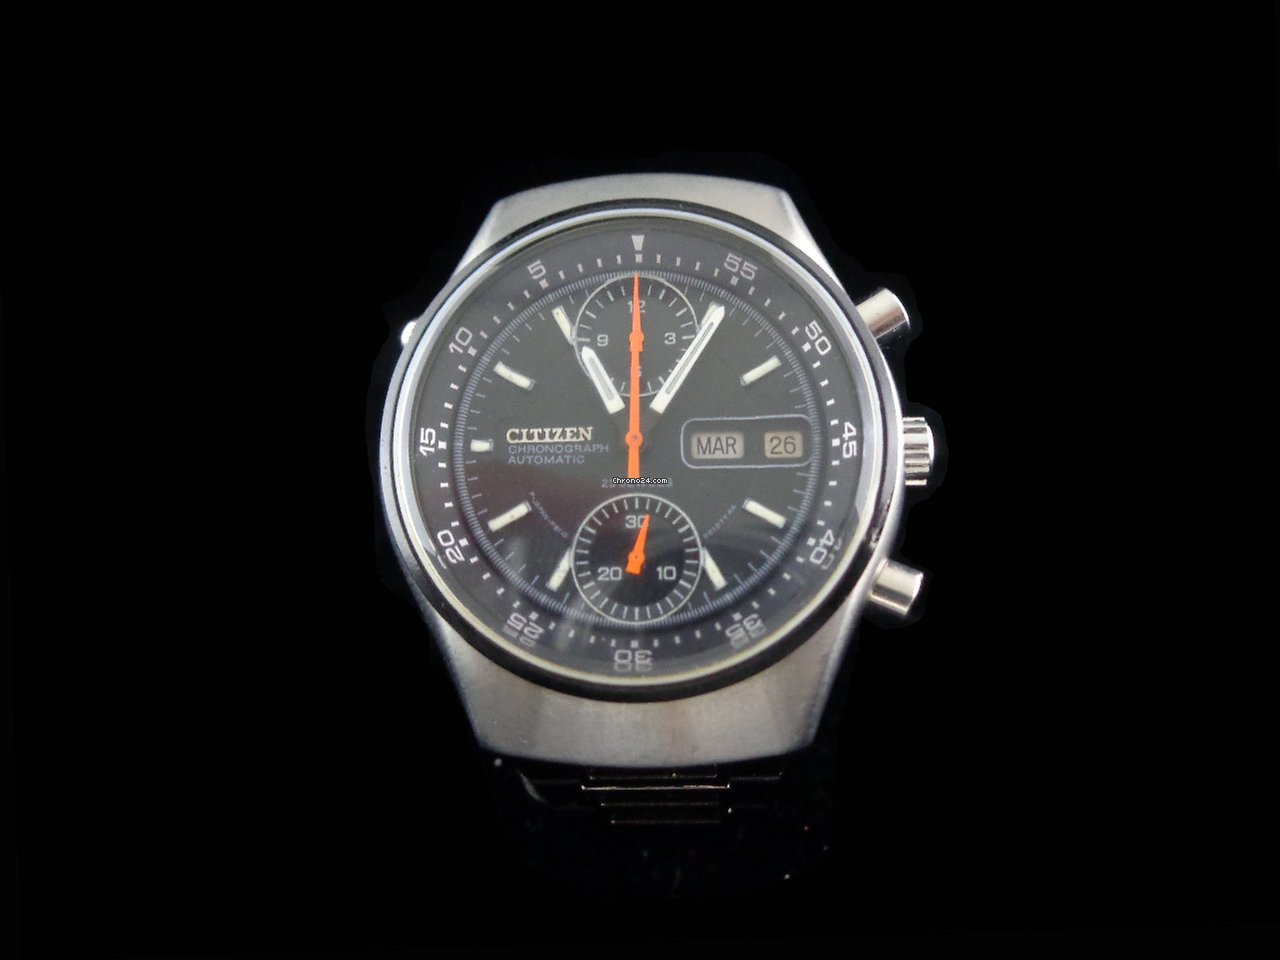 2bd80cc5c All Prices for Citizen Watches | Chrono24.co.uk